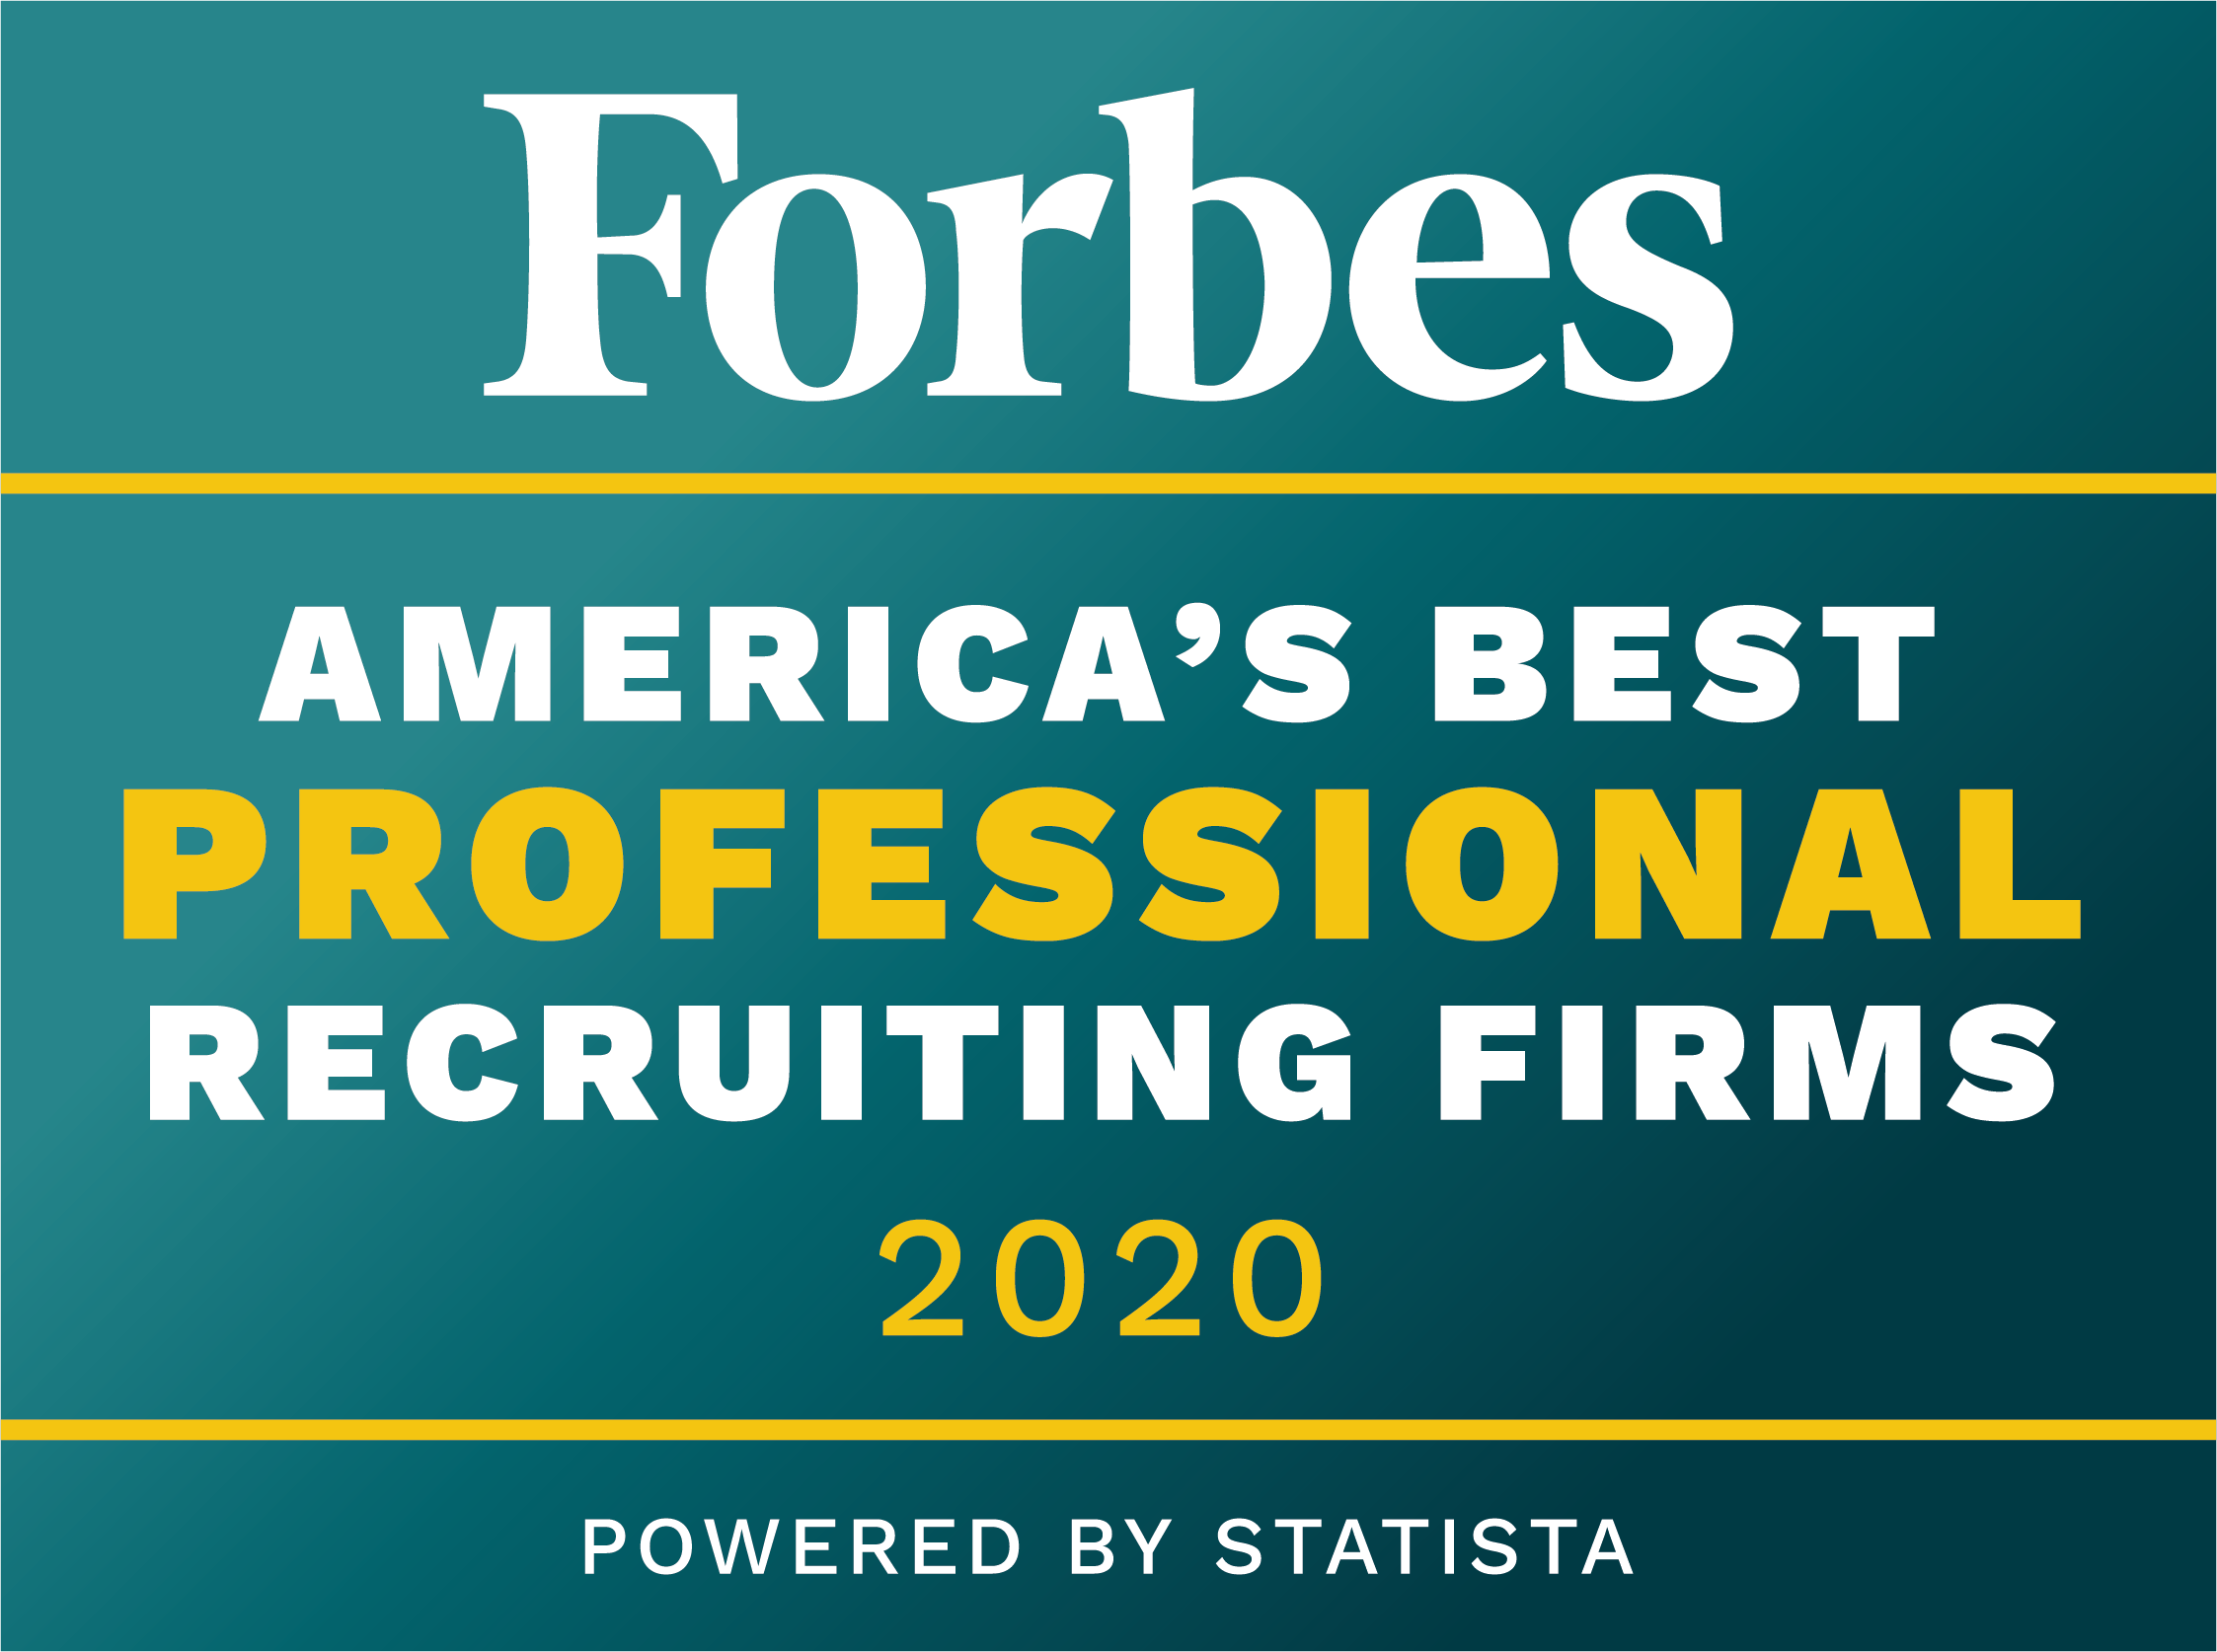 Forbes Best Professional Recruiting Firms 2020